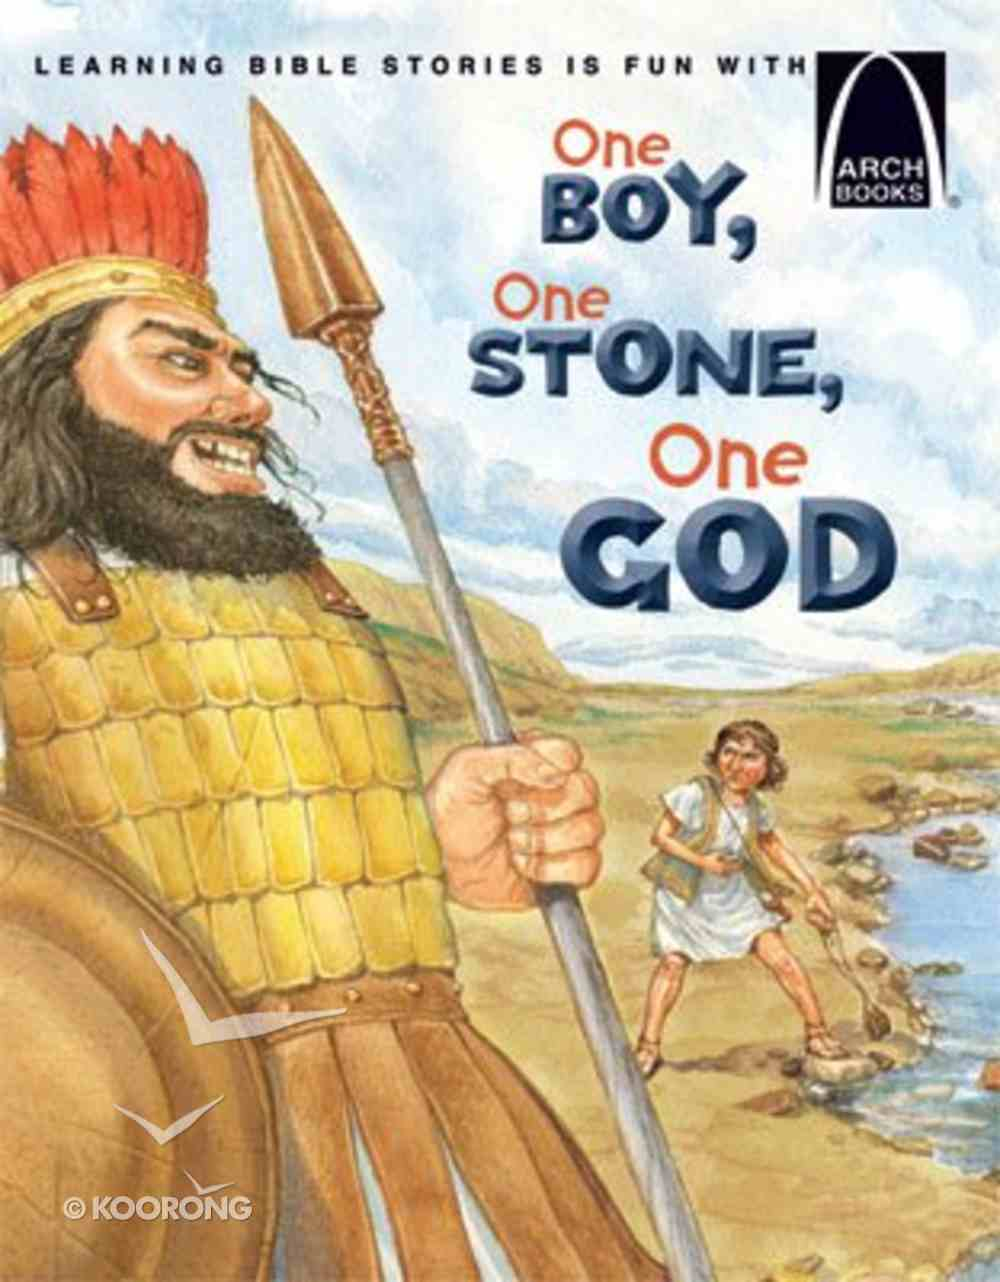 One Boy, One Stone, One God (Arch Books Series) Paperback